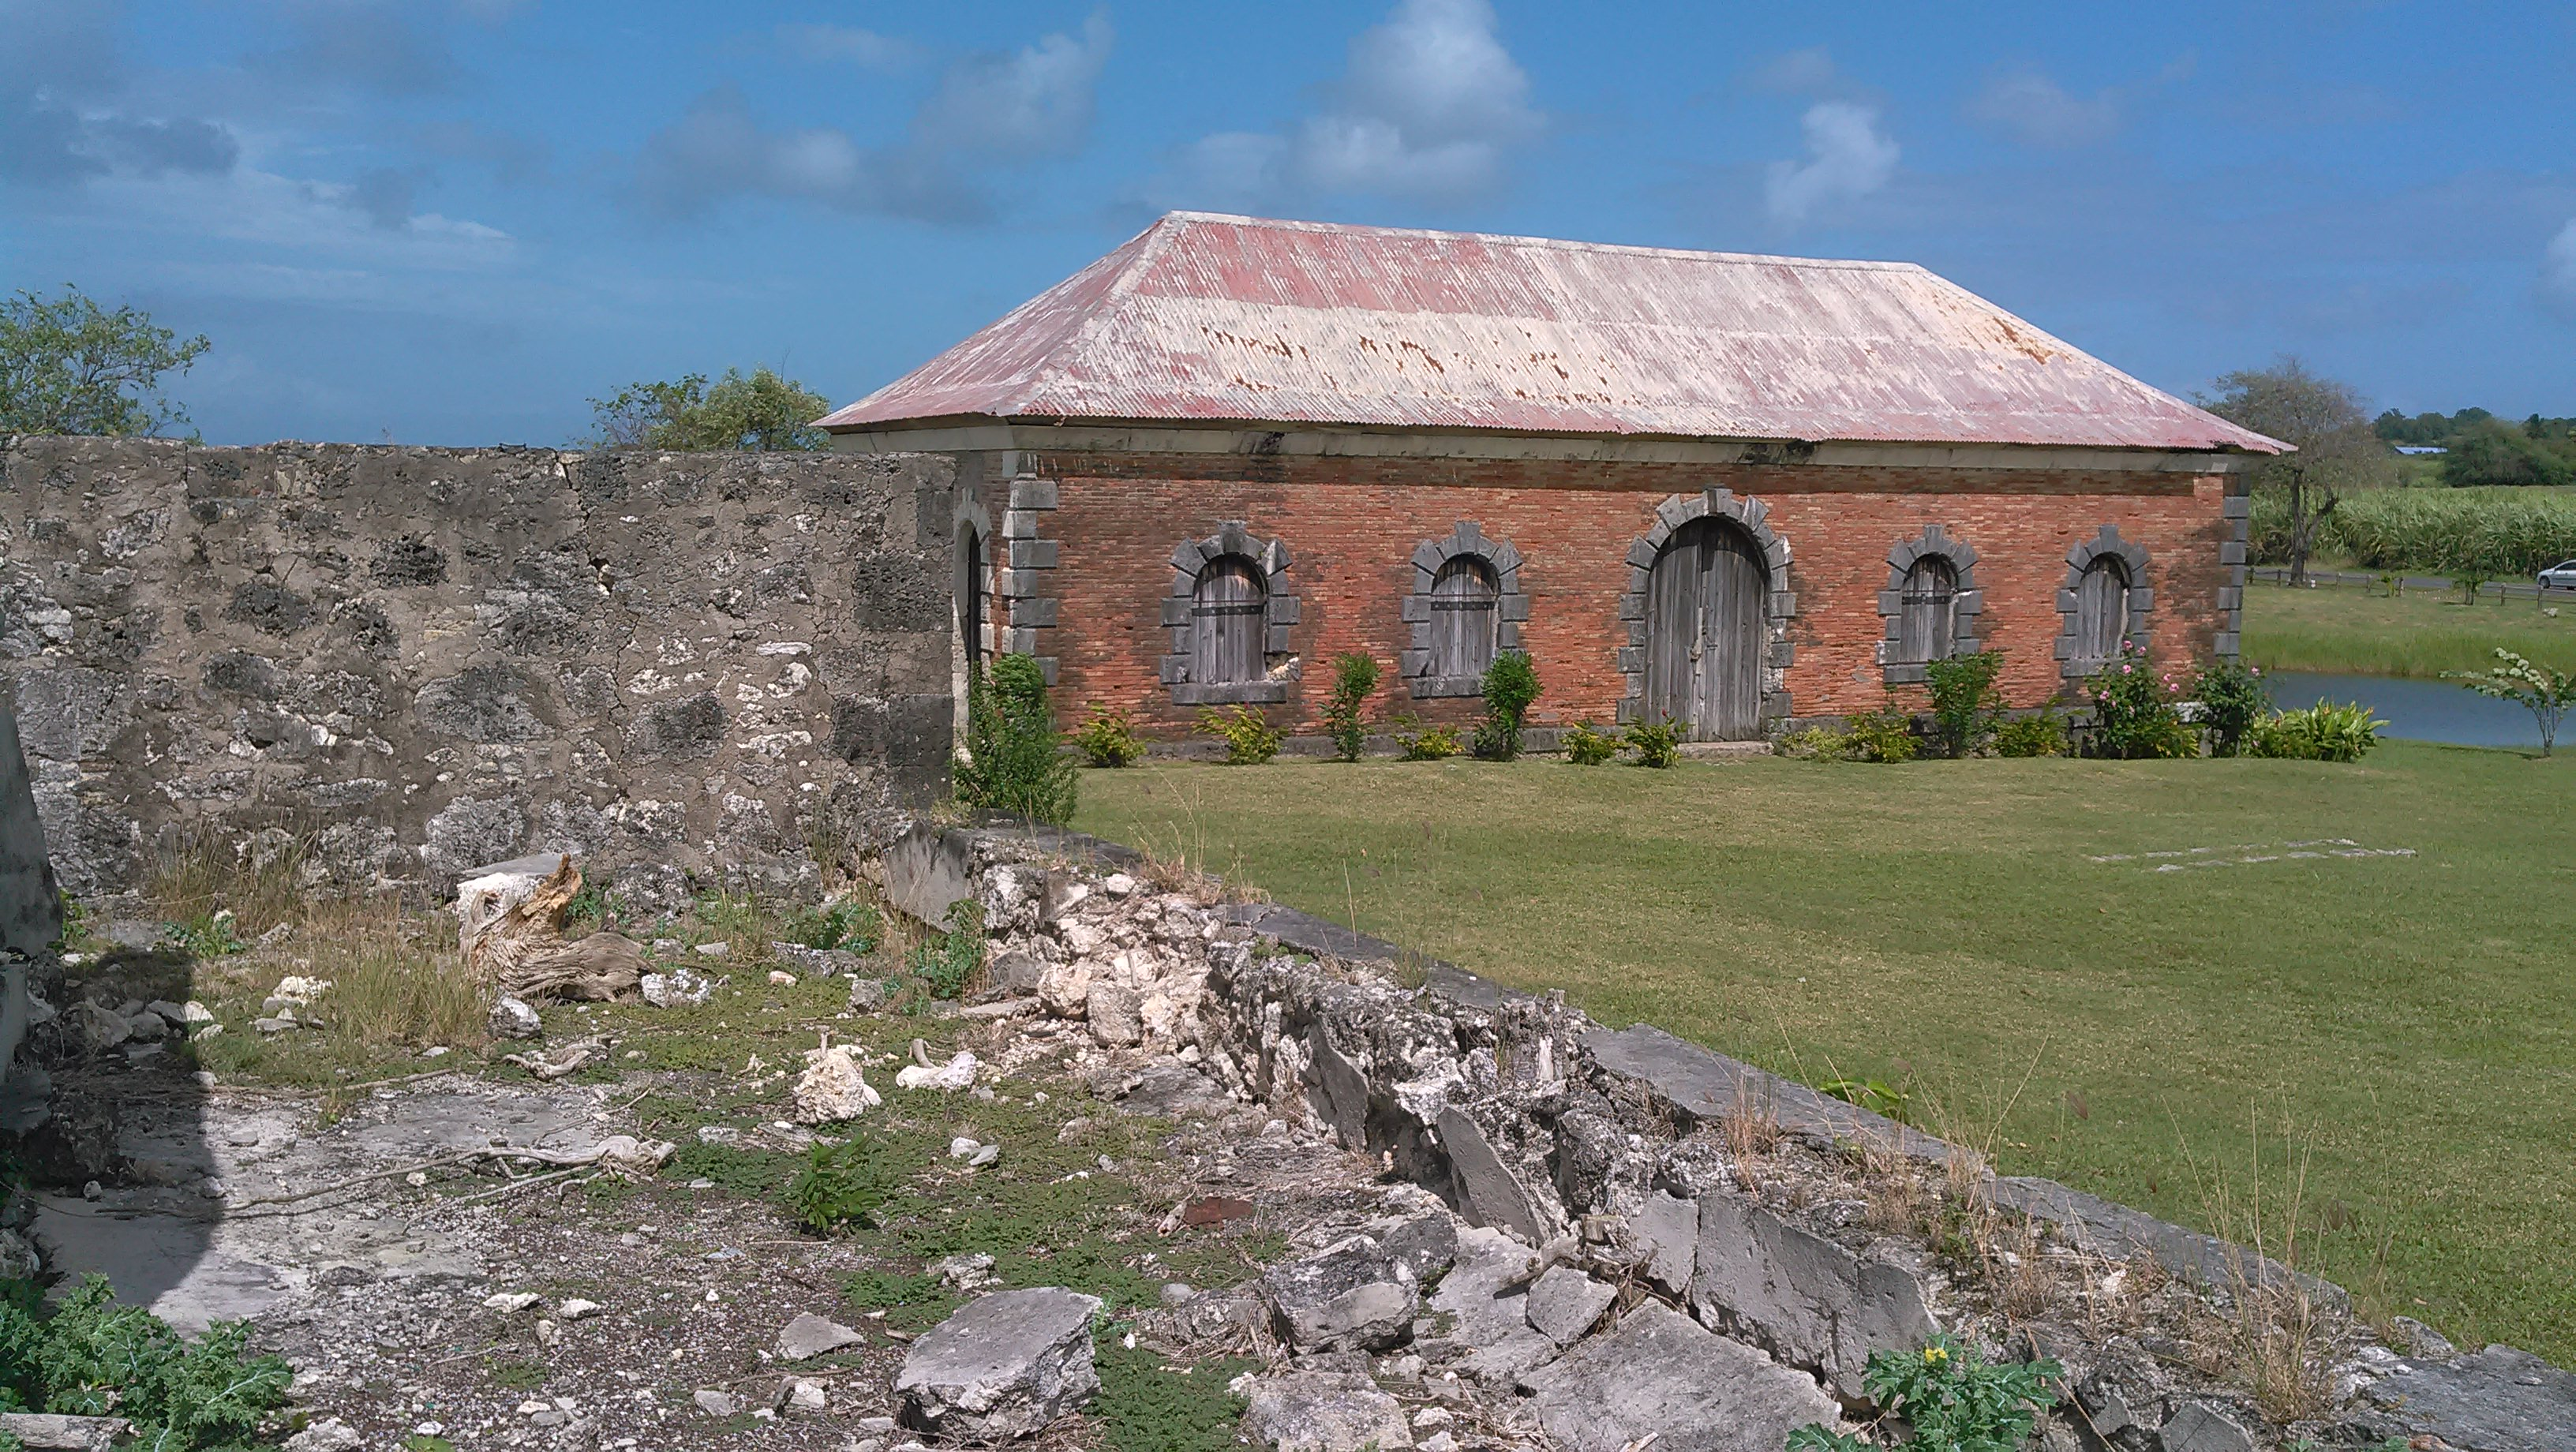 guadeloupe history Research guadeloupe genealogy, guadeloupe historical records, and participate in guadeloupe genealogy forums and more we have compiled a list of the best guadeloupe genealogy resources from around the web.